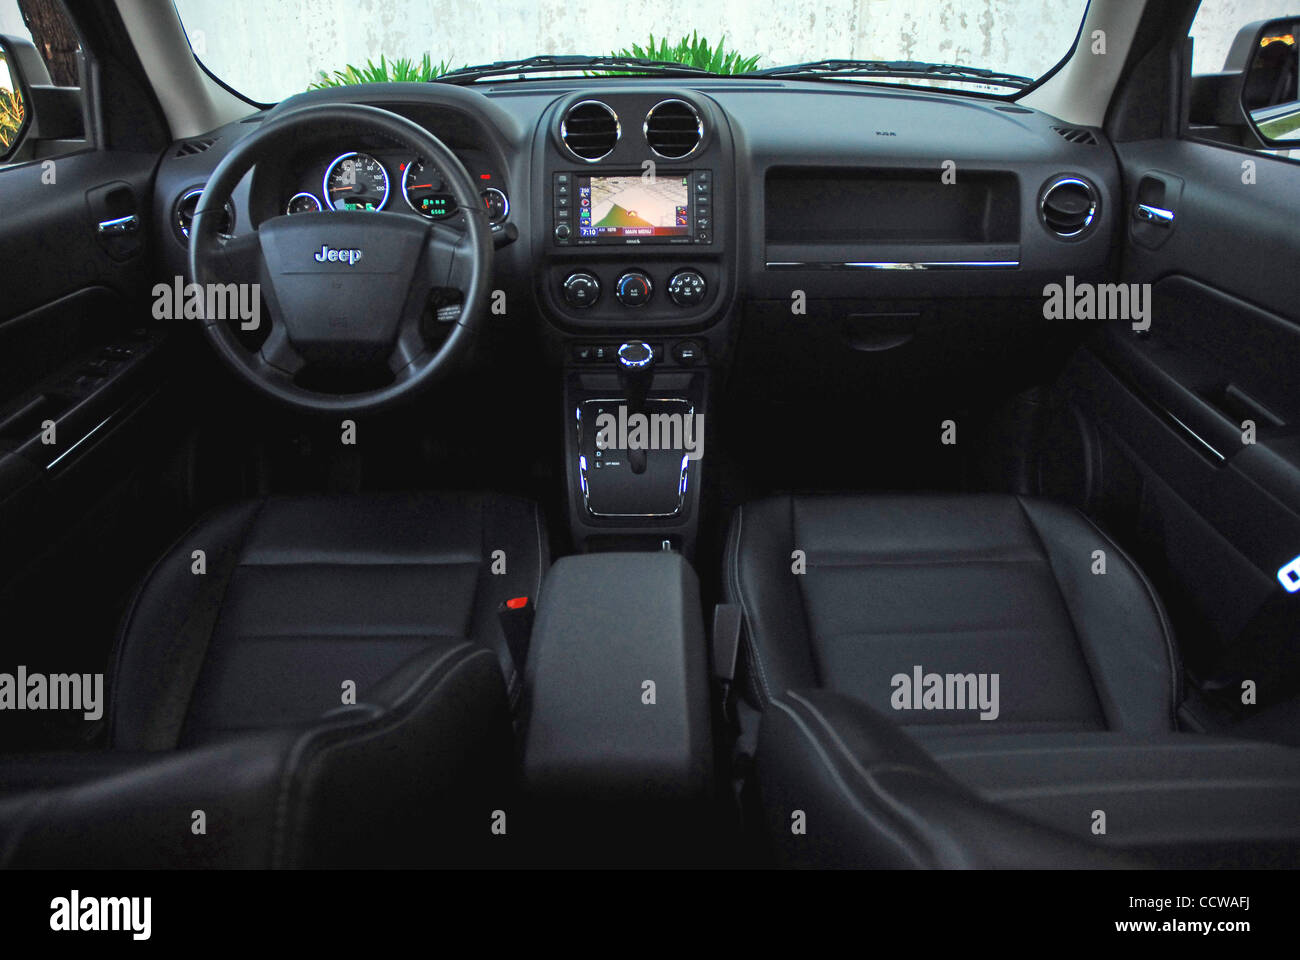 Jeep Dashboard Stock Photos Images Alamy 2010 Patriot Engine Diagram April 12 Los Angeles California Usa The